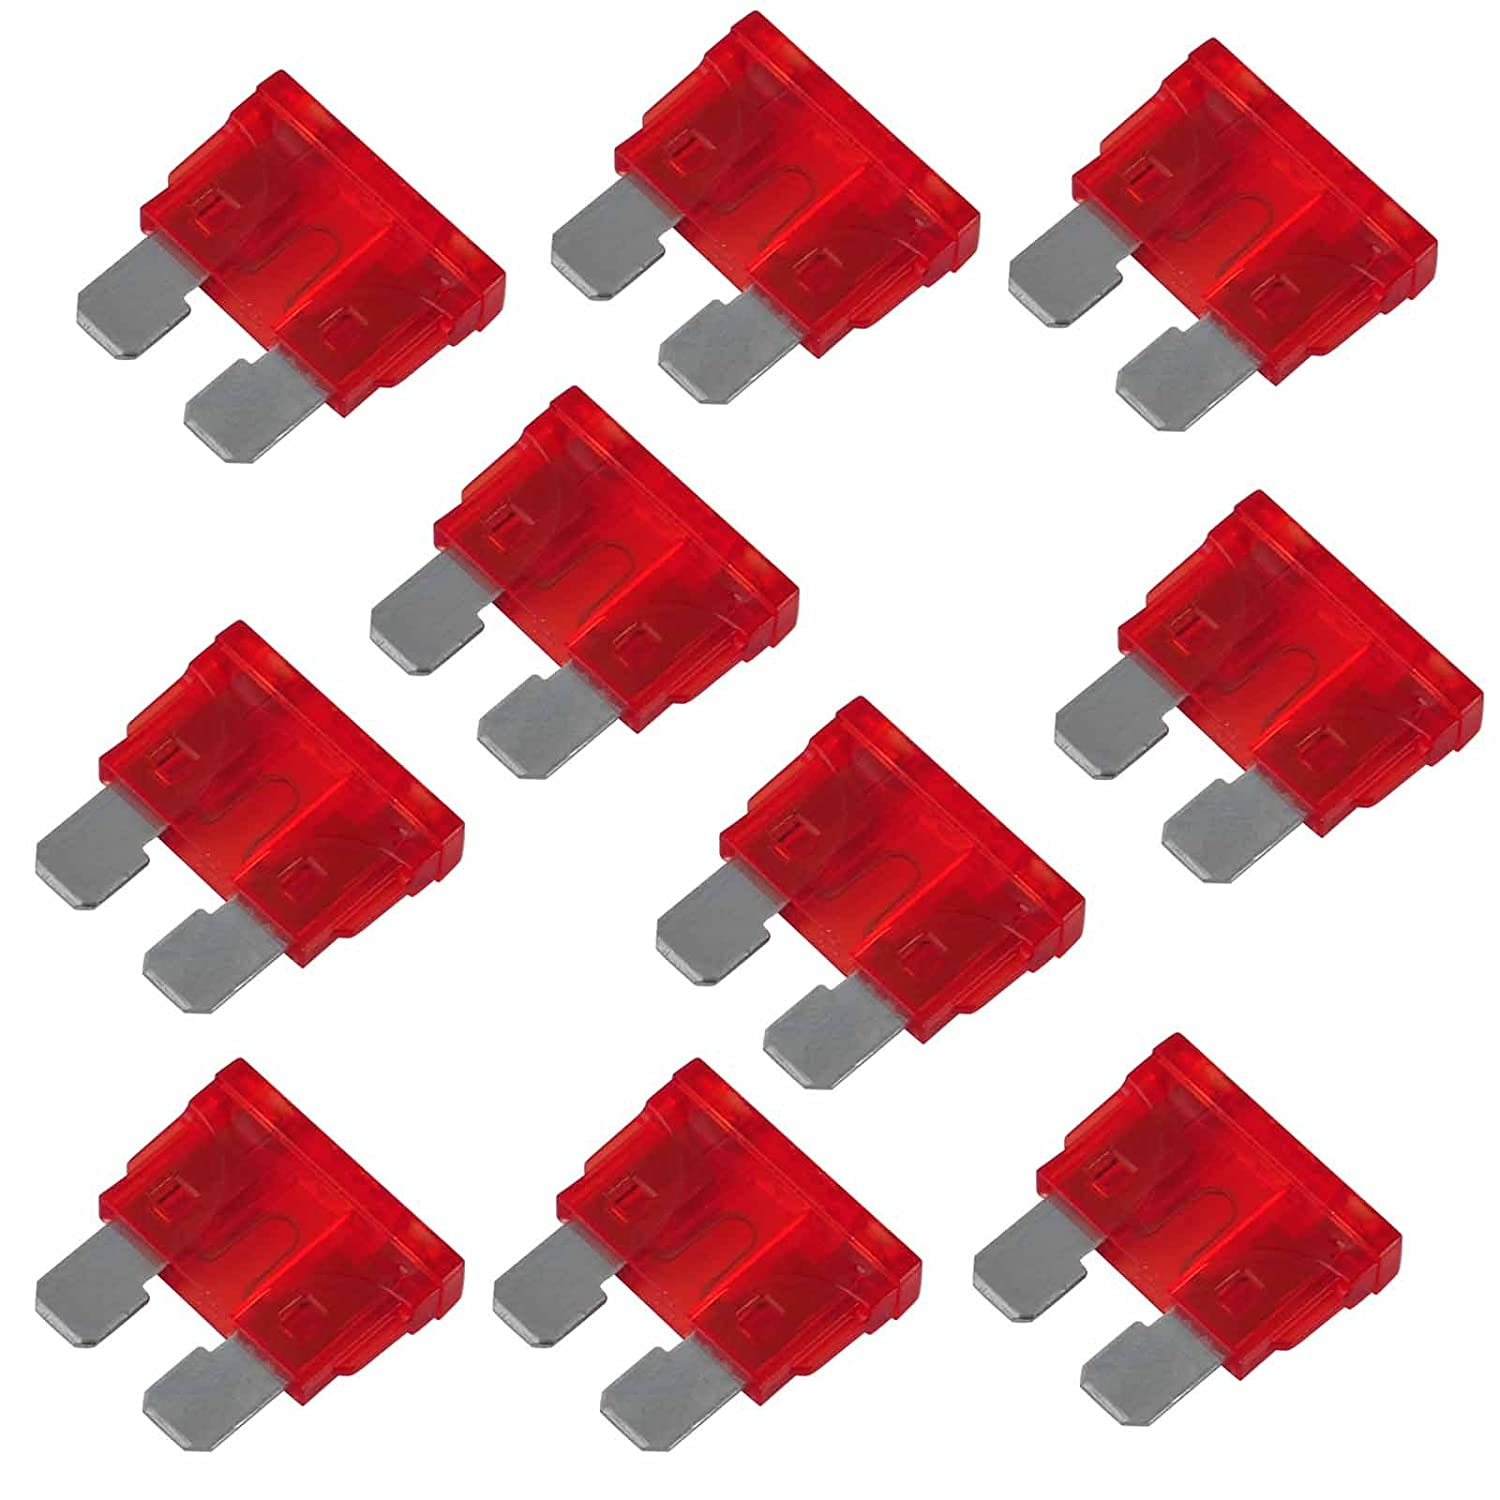 20 Pcs 10A 32V Vehicle Automotive Car Truck SUV Blade Fuse Red